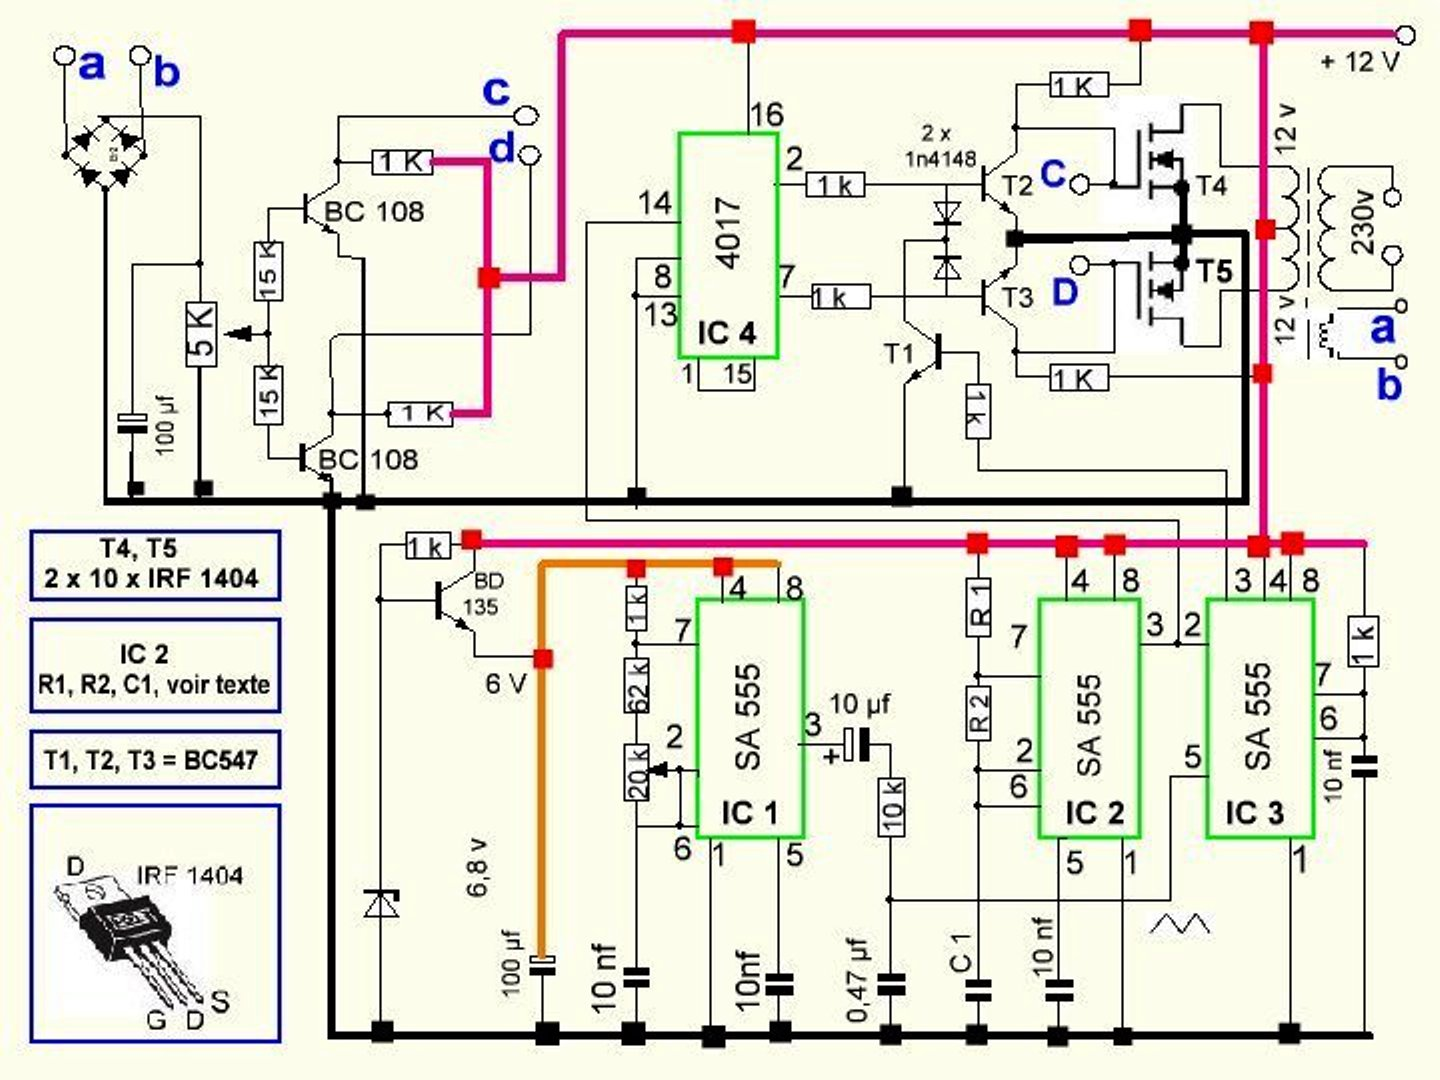 300 watts pwm controlled pure sine wave - schematic